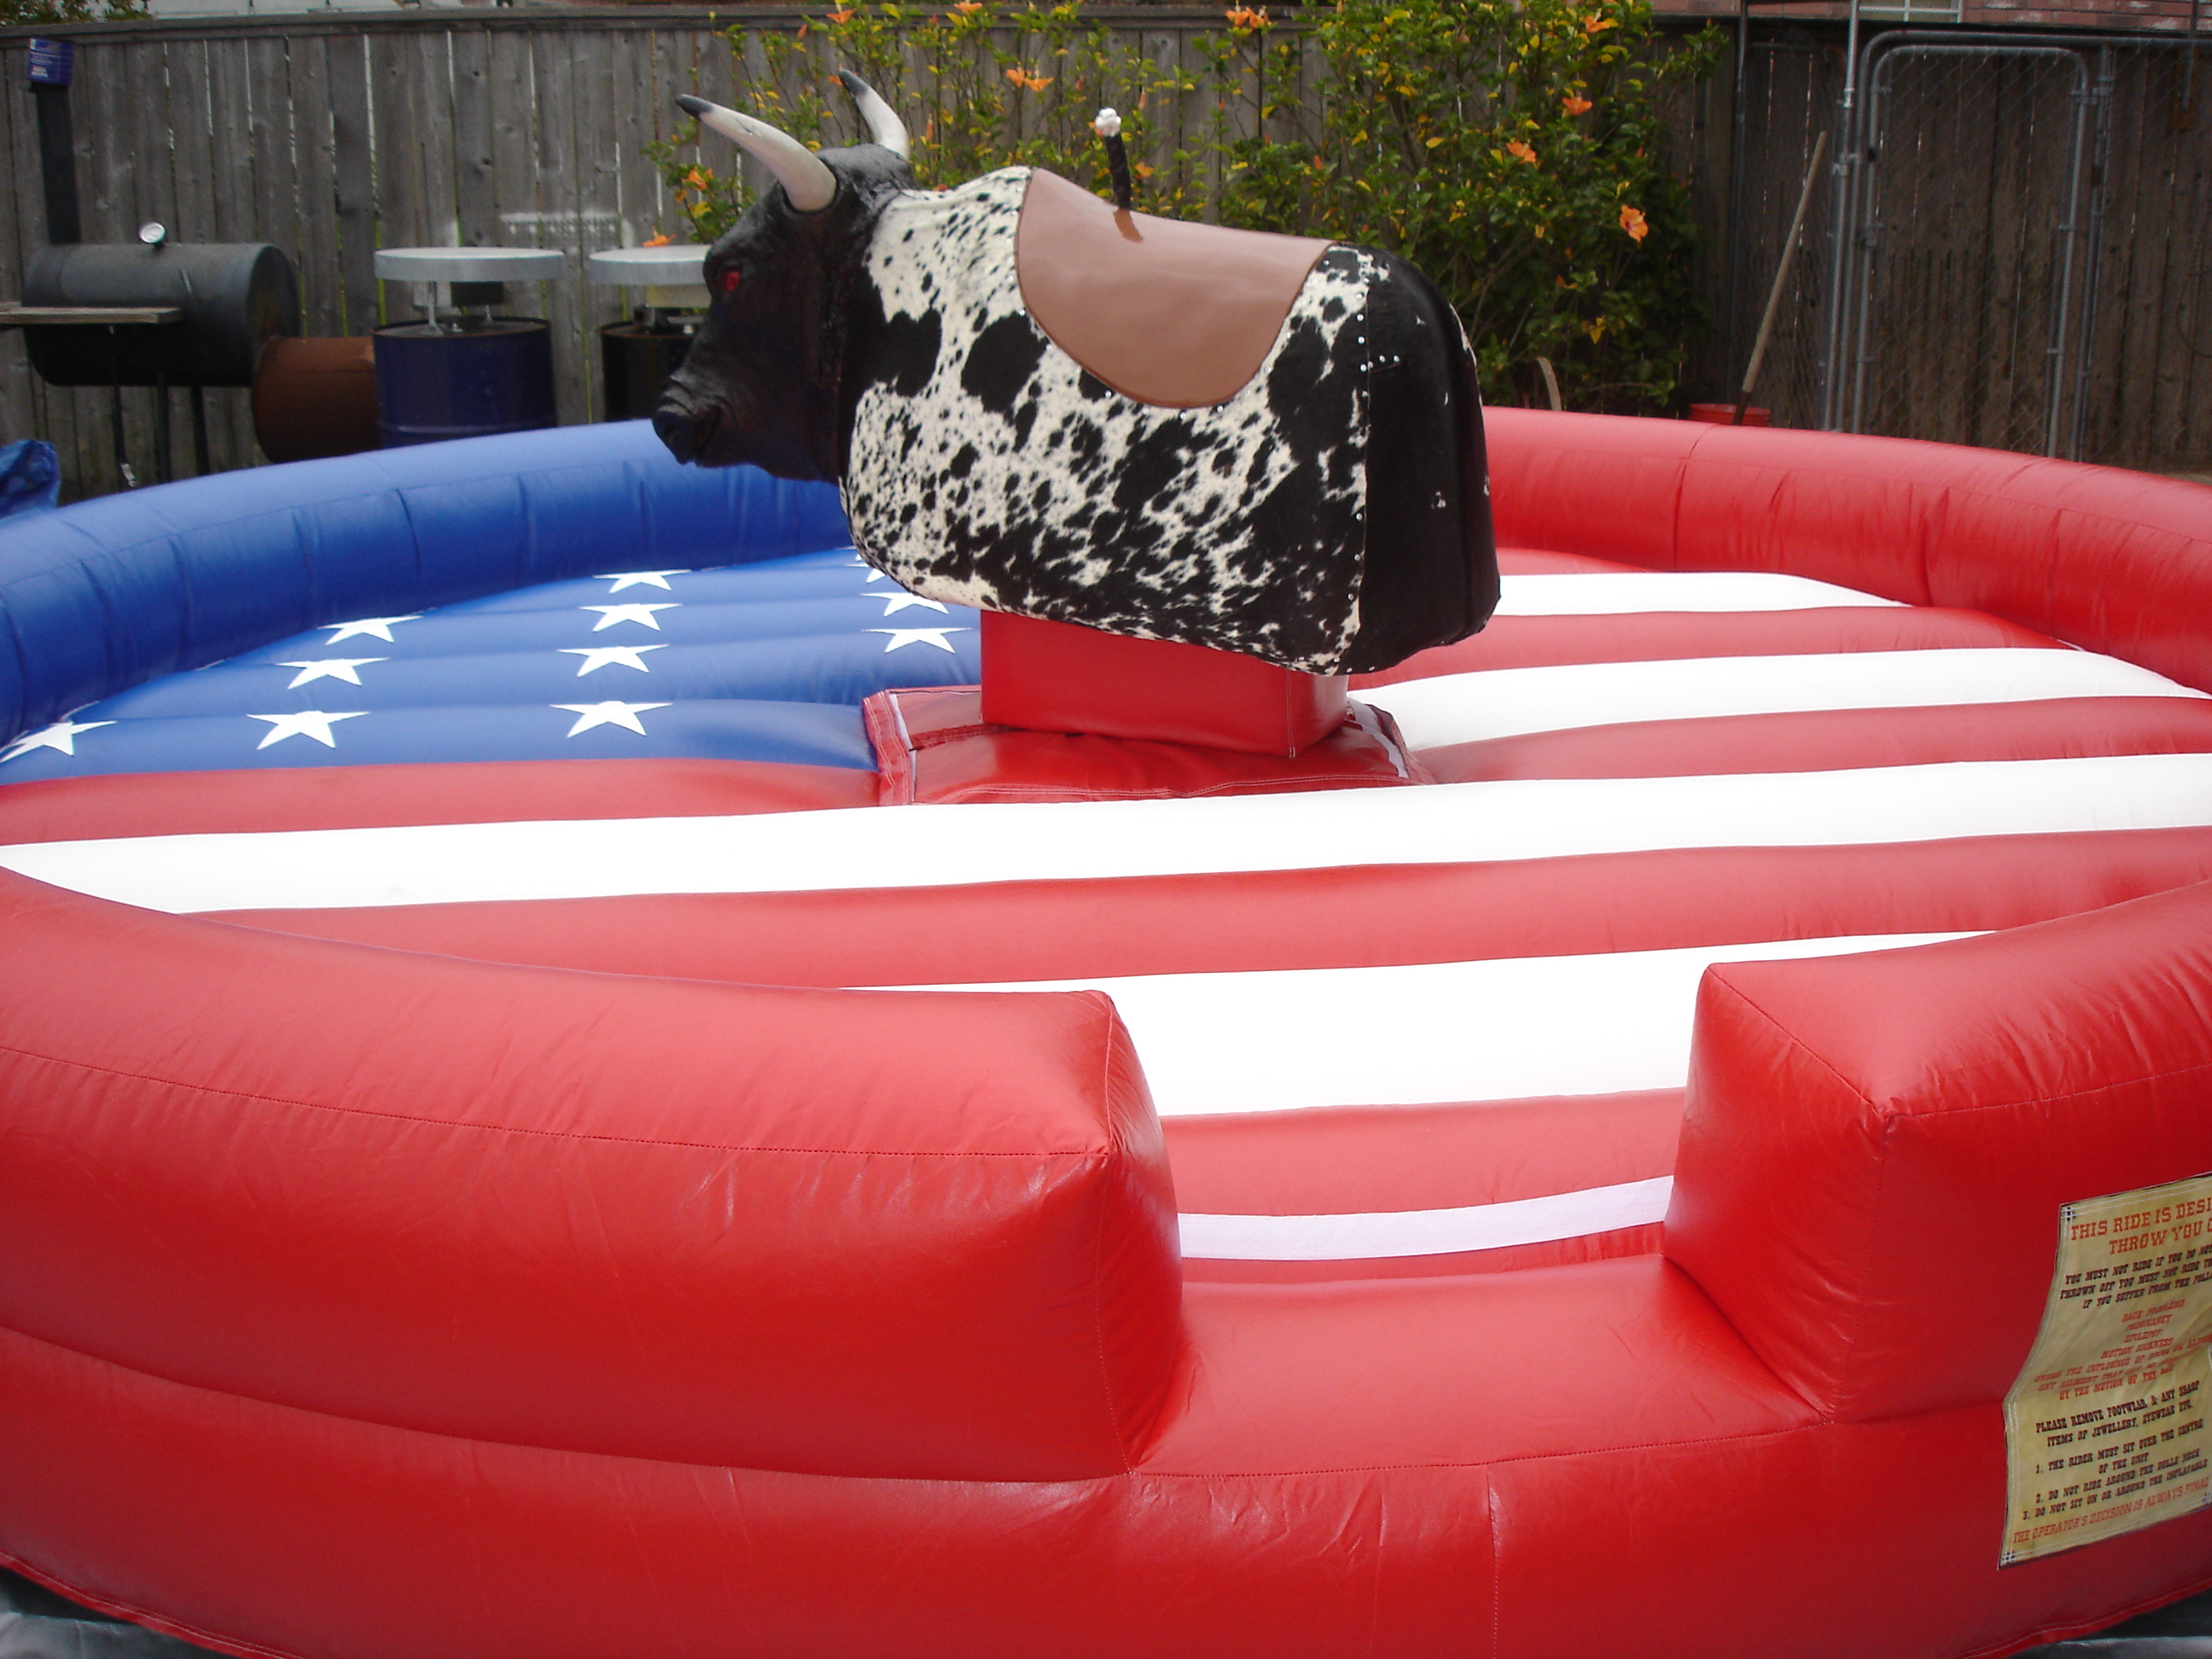 Mechanical Bull 2